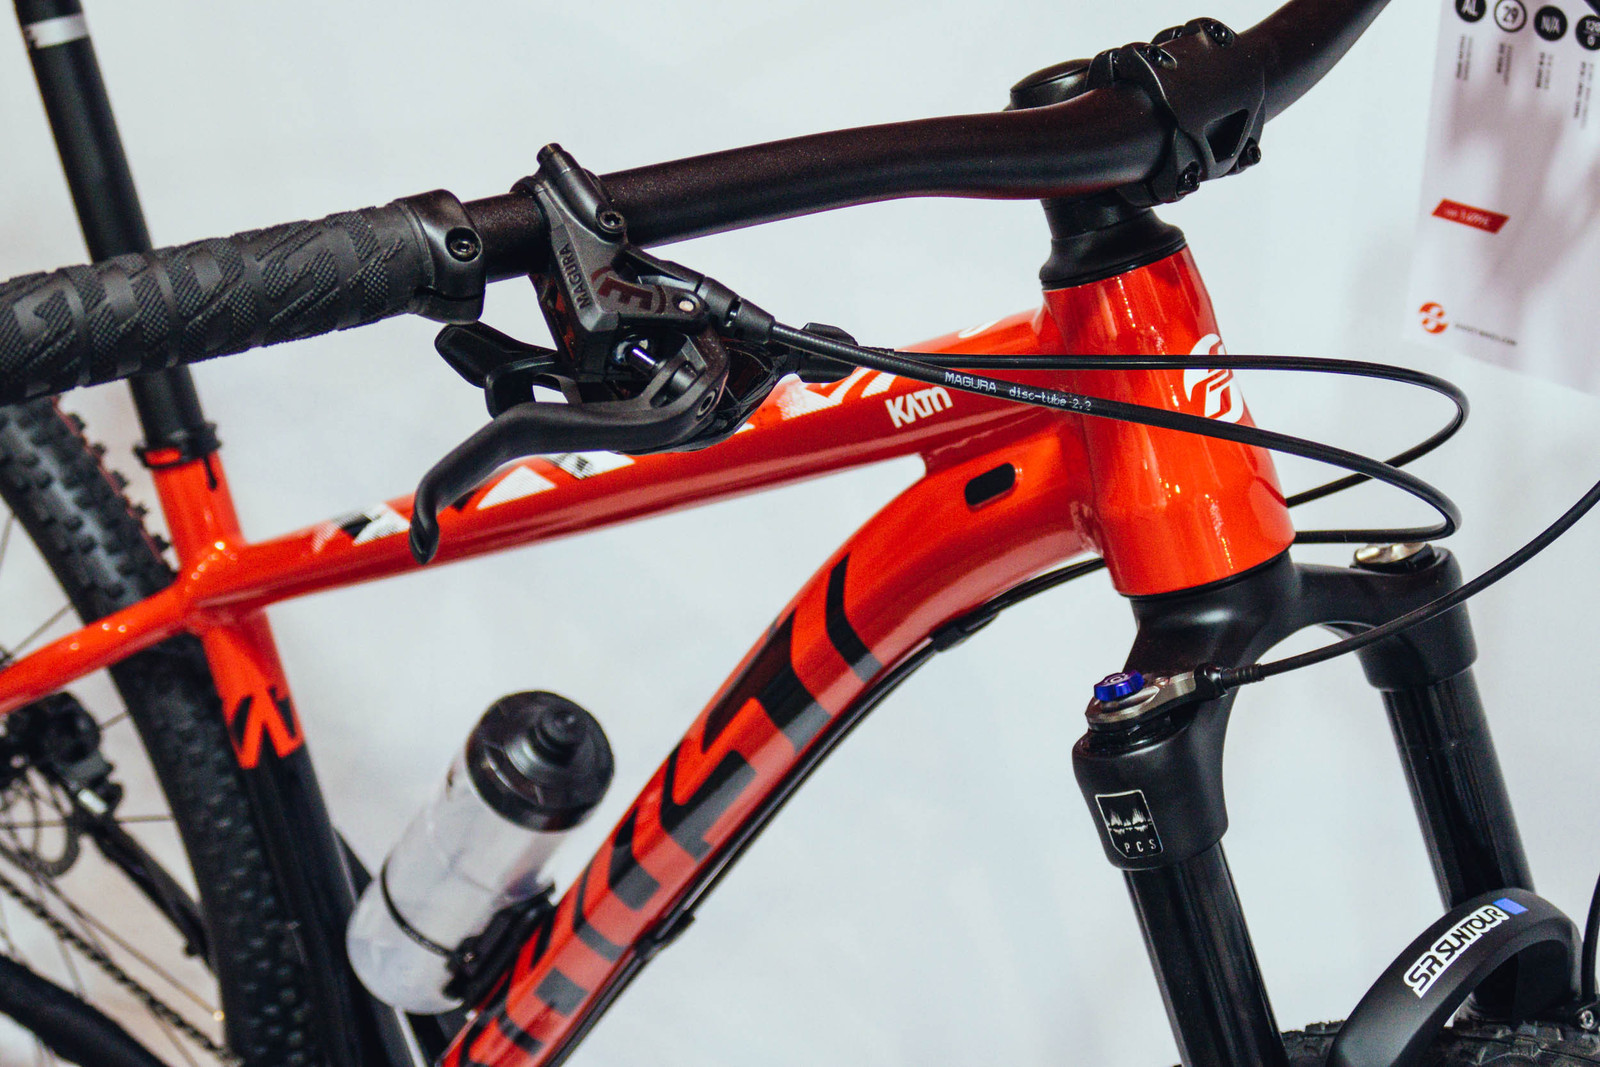 Ghost's Affordable Slack, Long and Low KatoX 29er Hardtails